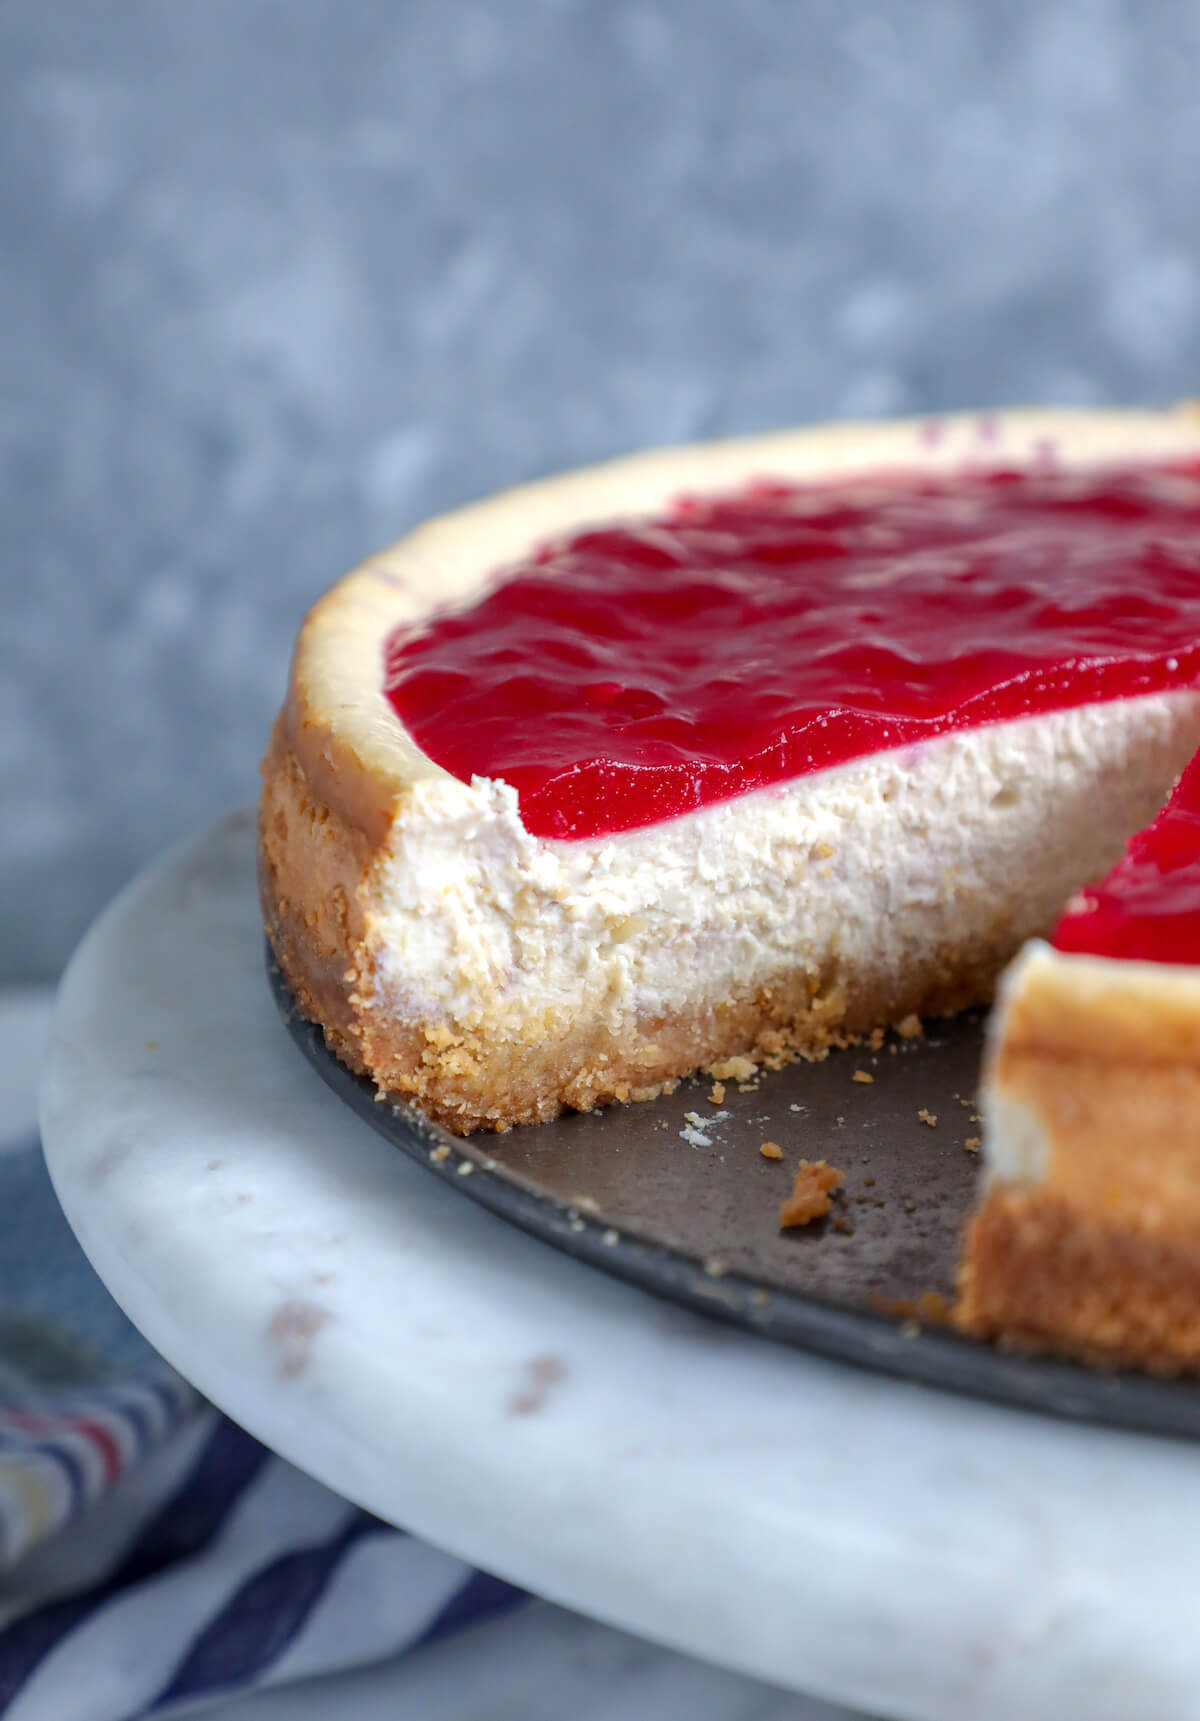 Cross section of the Keto cranberry orange cheesecake